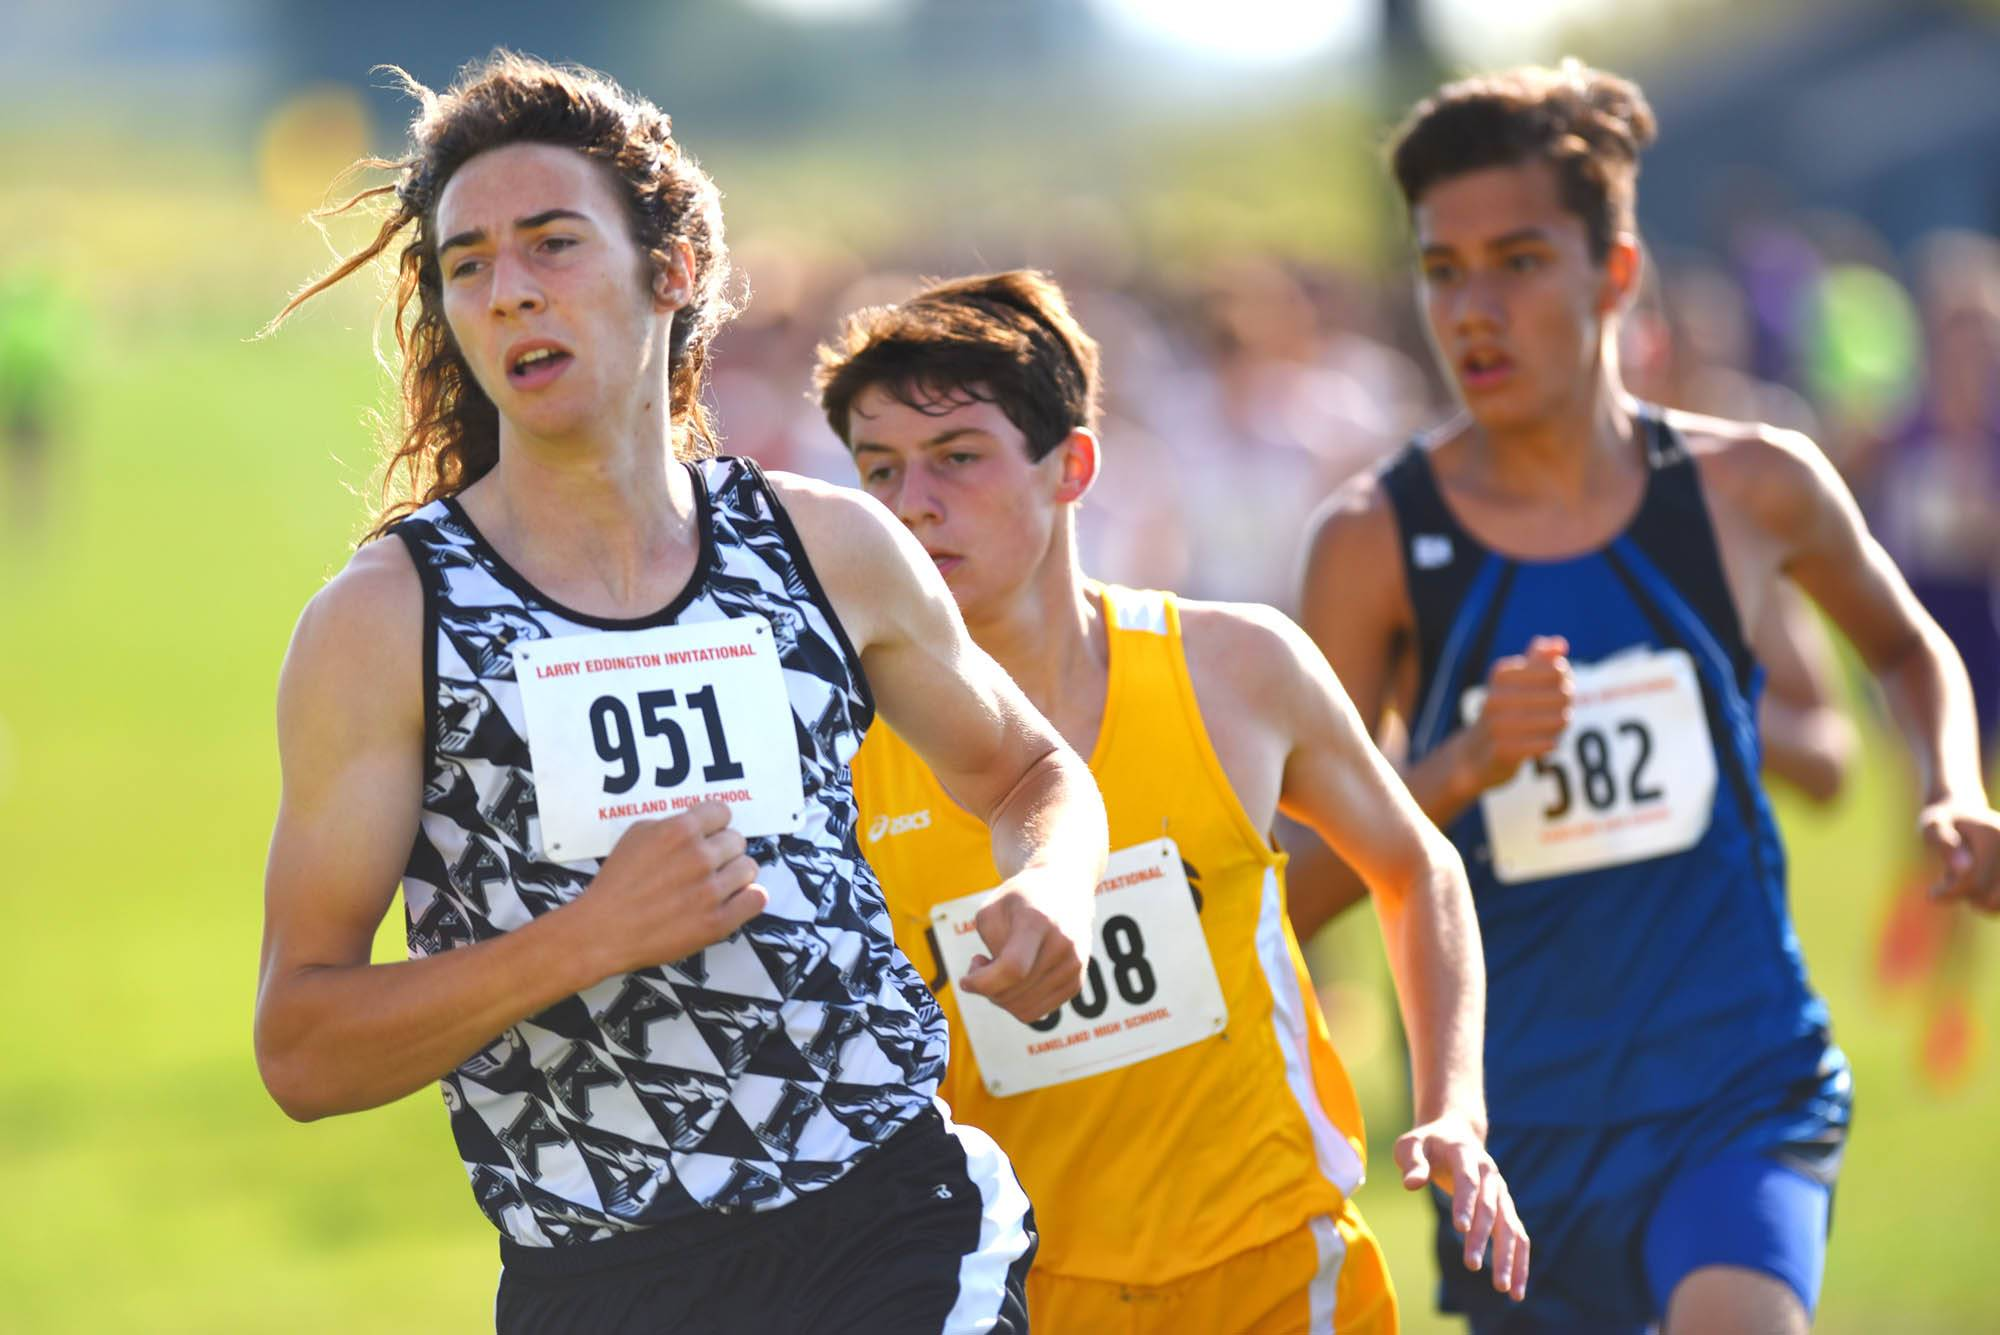 Kaneland's Matthew Richtman leads Jacobs' Zack Albrecht through a turn Saturday at the Eddington Invitational cross country meet at Kaneland High School. They finished first and second.